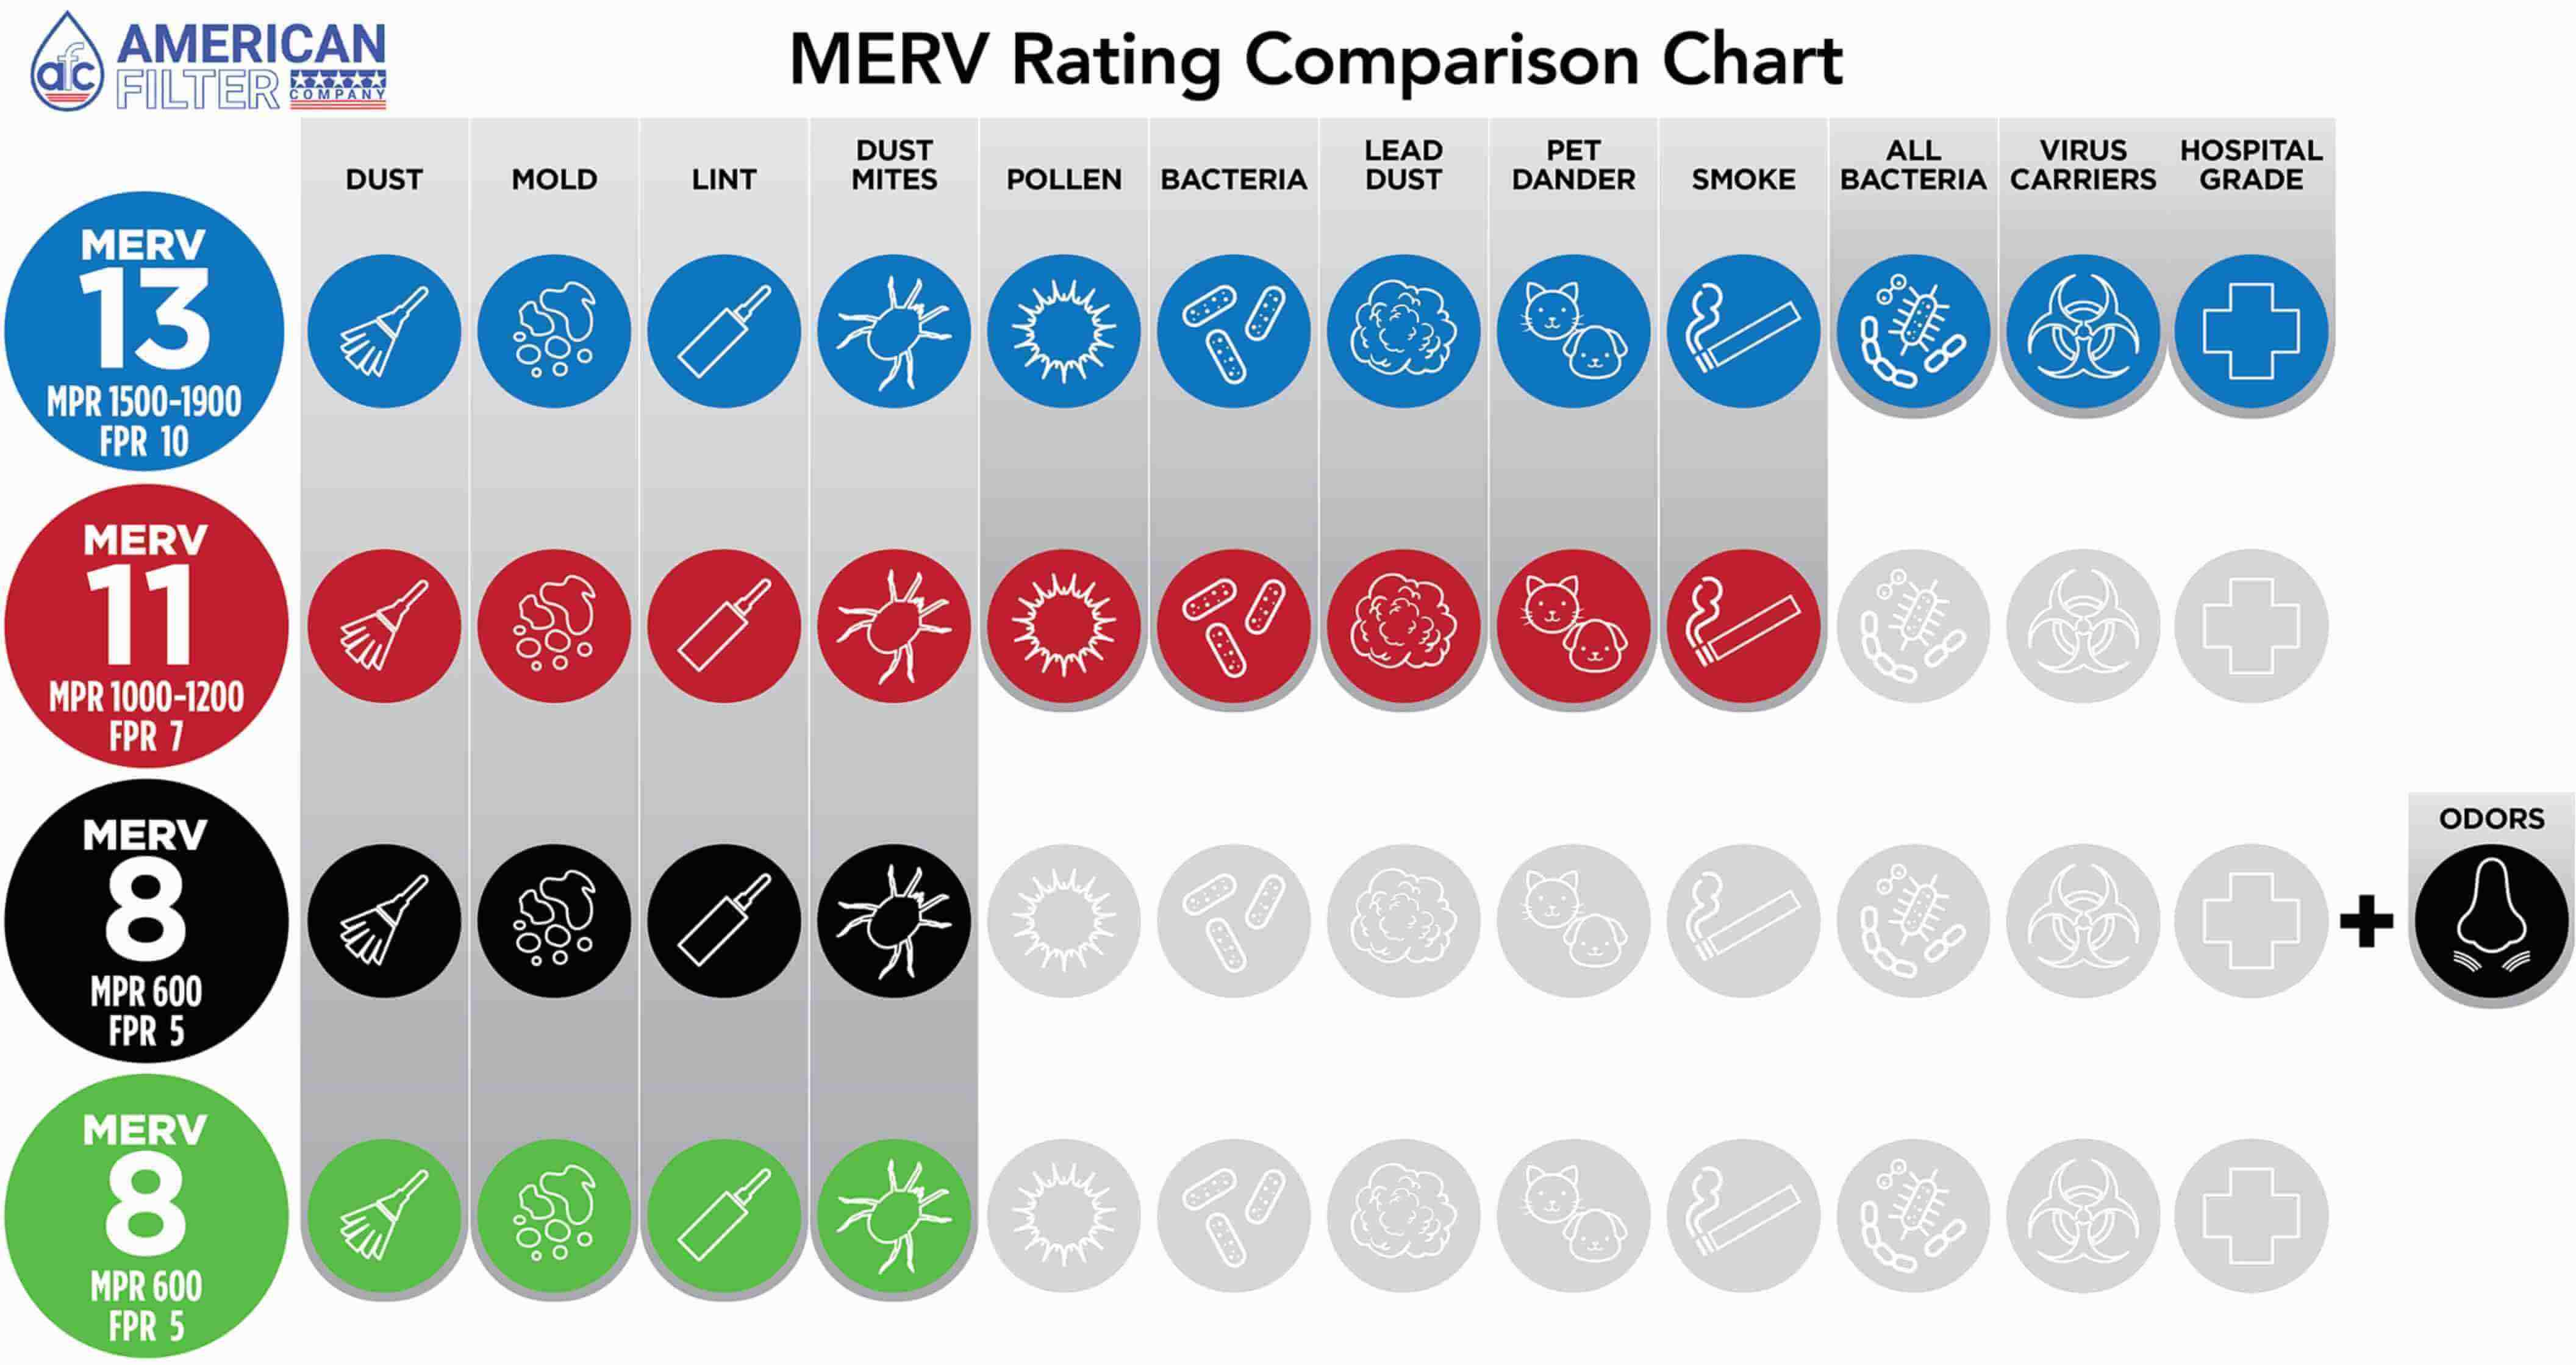 MERV Rating Comparison Chart